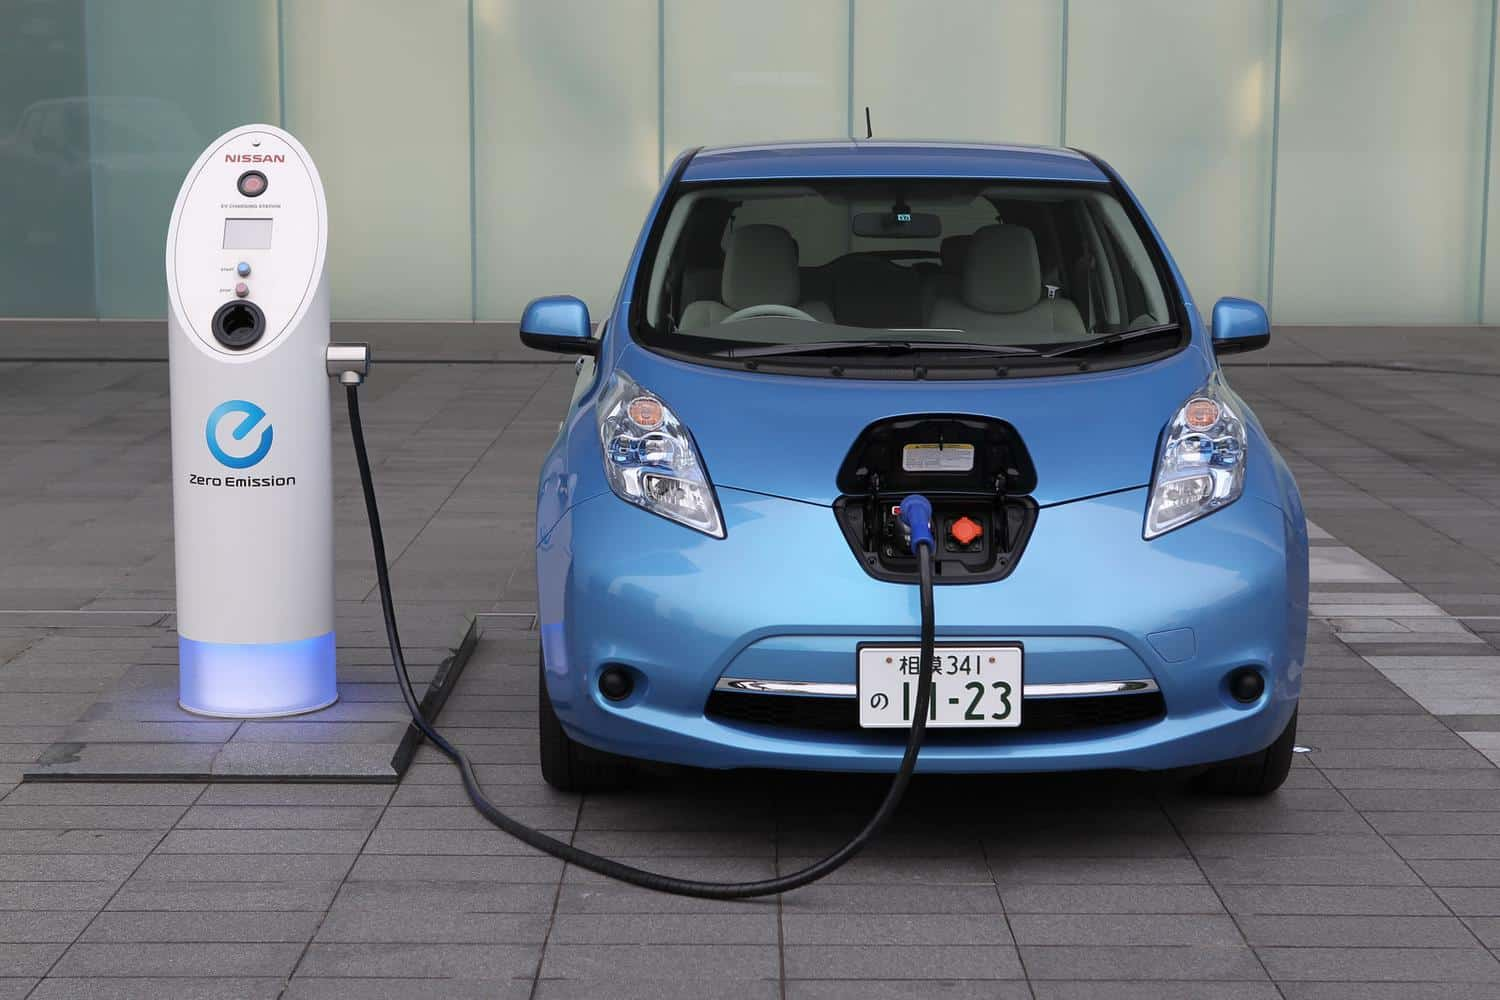 Nissan Leaf - most popular elevtric vehicle (EV) in the UK